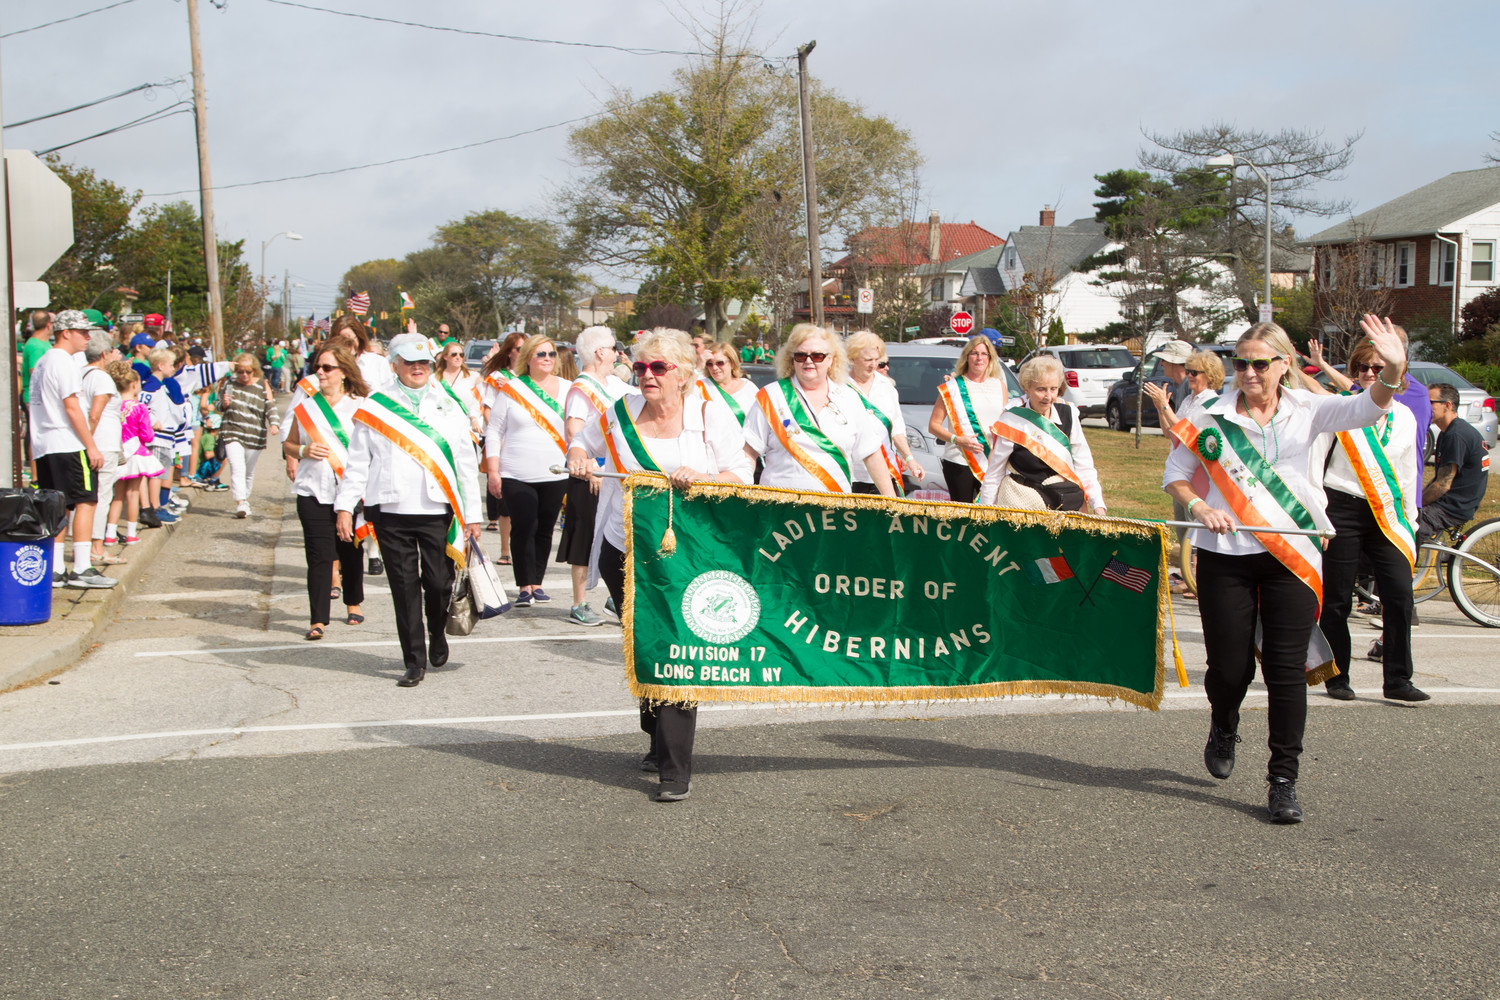 The Ladies Ancient Order of Hibernians Division 17 of Long Beach waved to onlookers as they walked down West Beech Street.